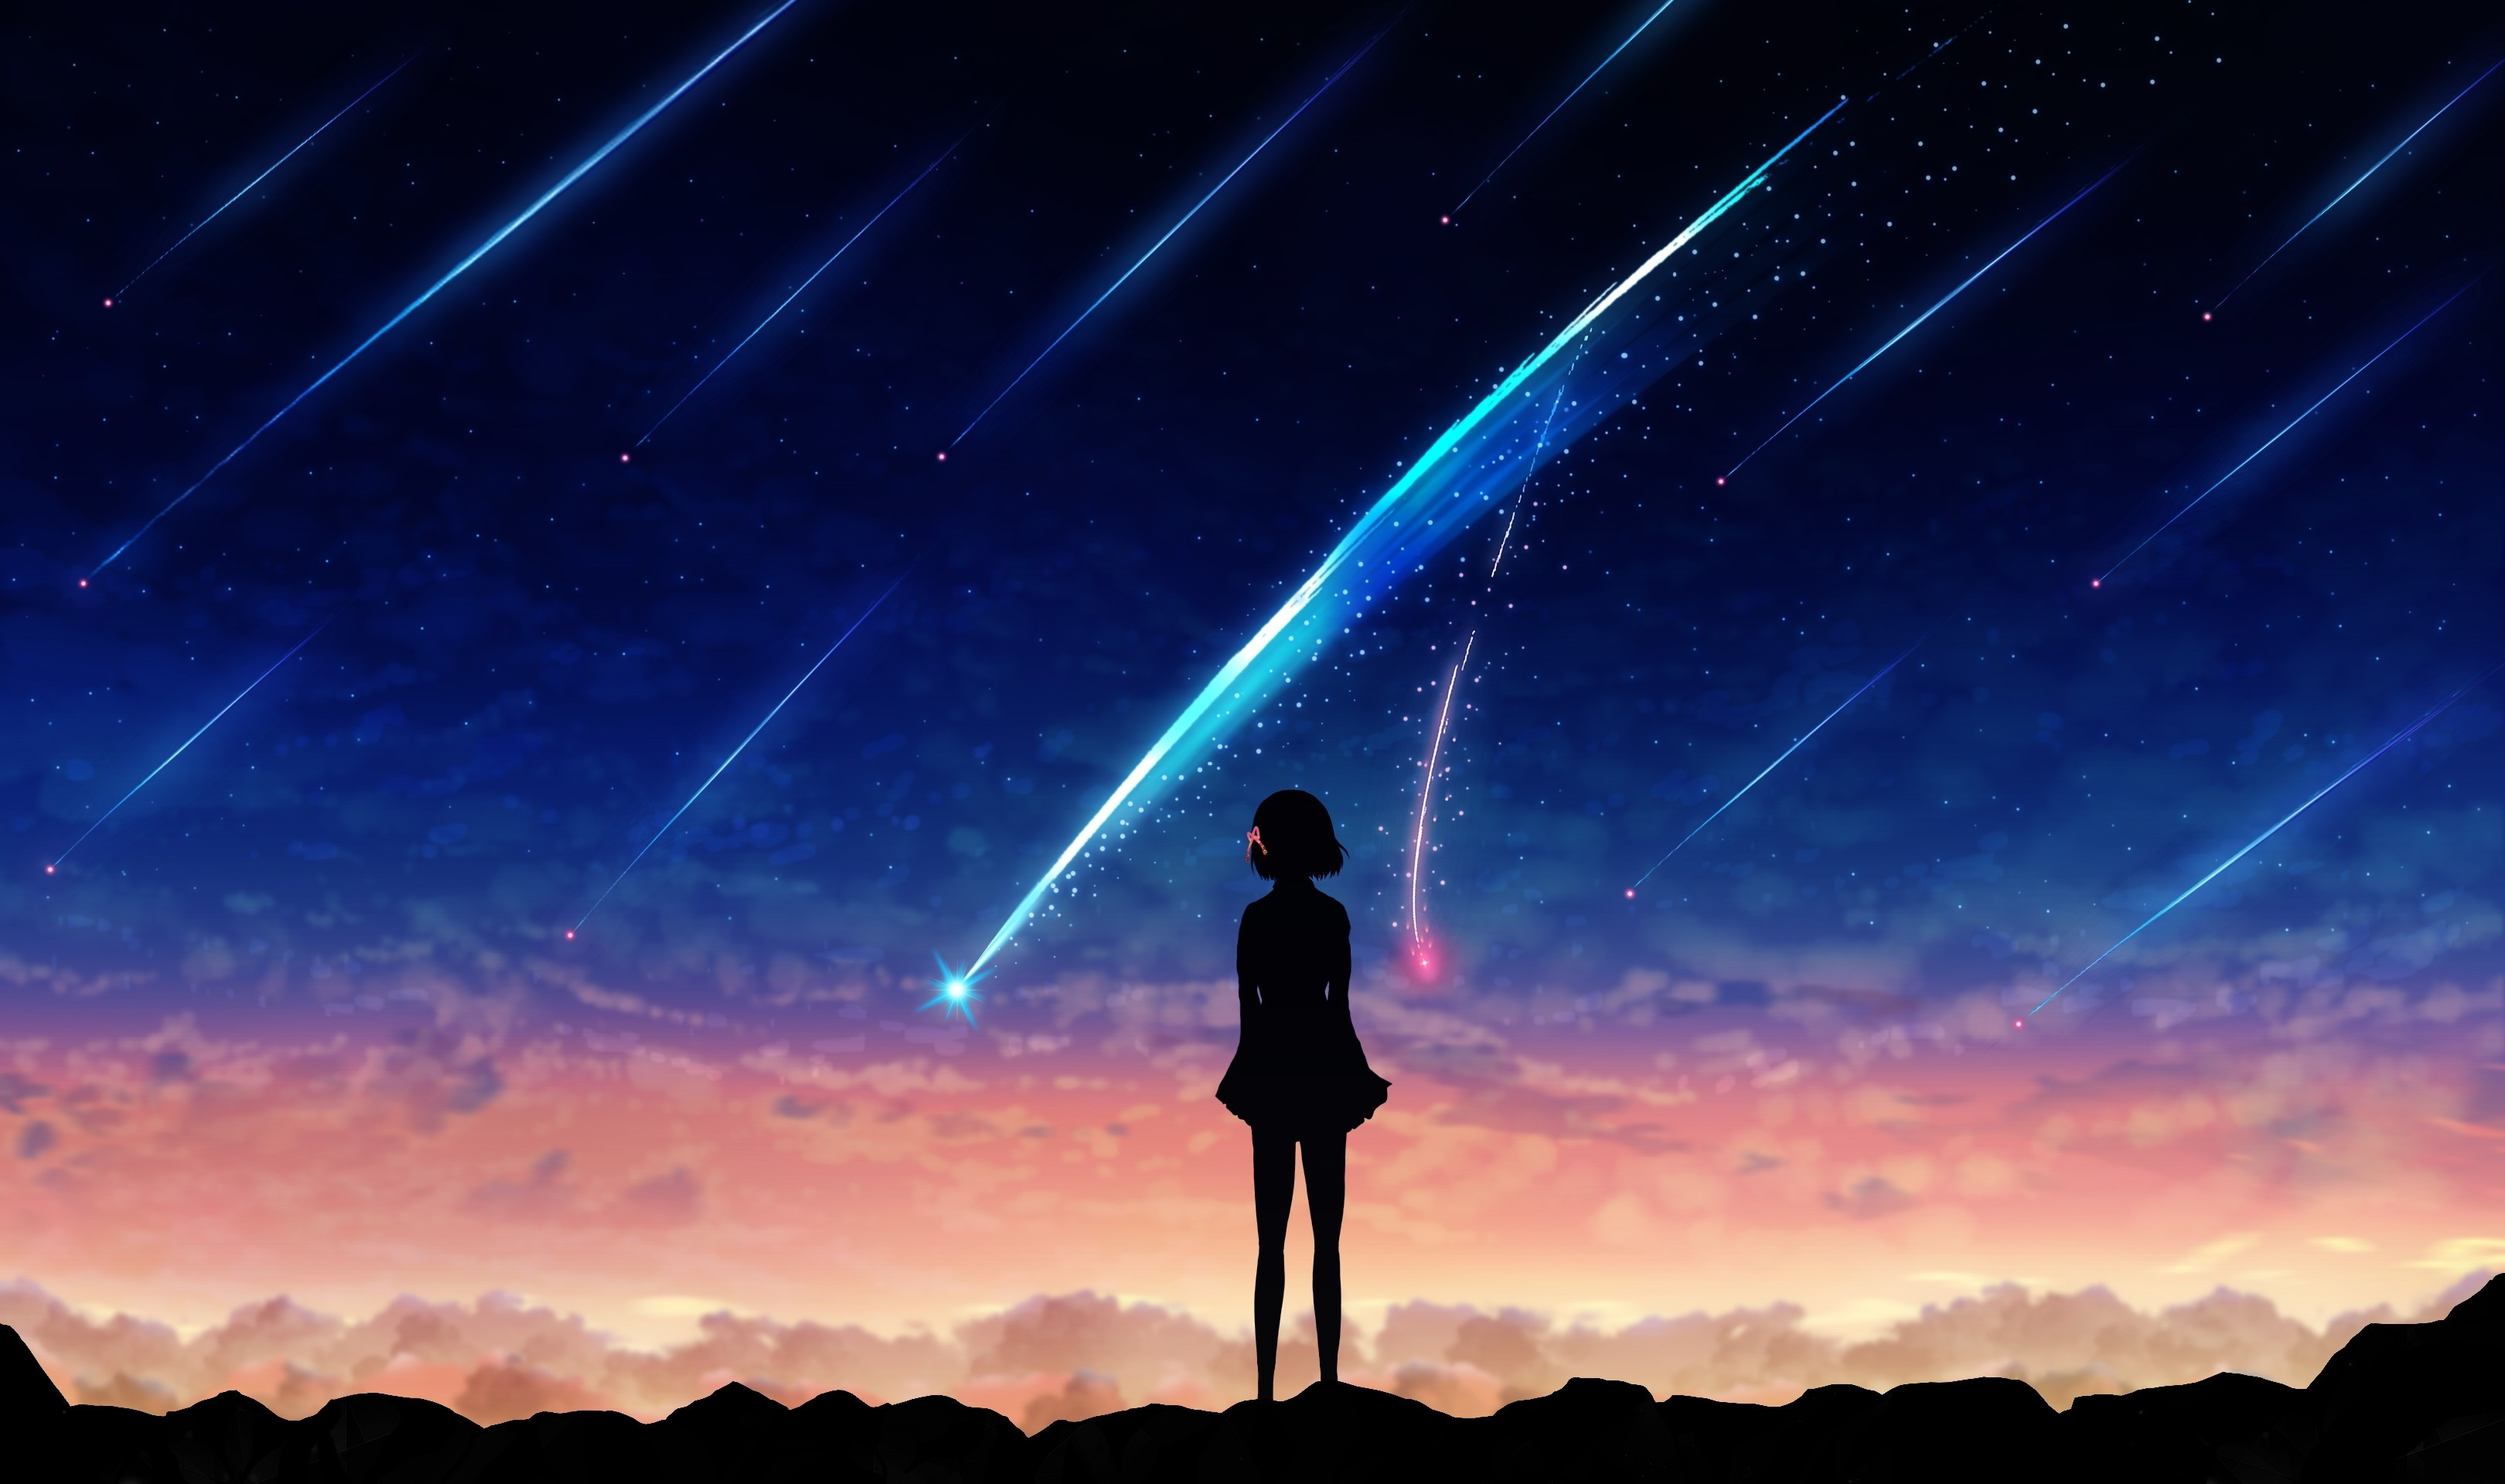 3240x1920 Title : your name wallpapers (78+ images) Dimension : 3240 x 1920. File  Type : JPG/JPEG. 10 Best Your Name Desktop Wallpaper FULL HD ...